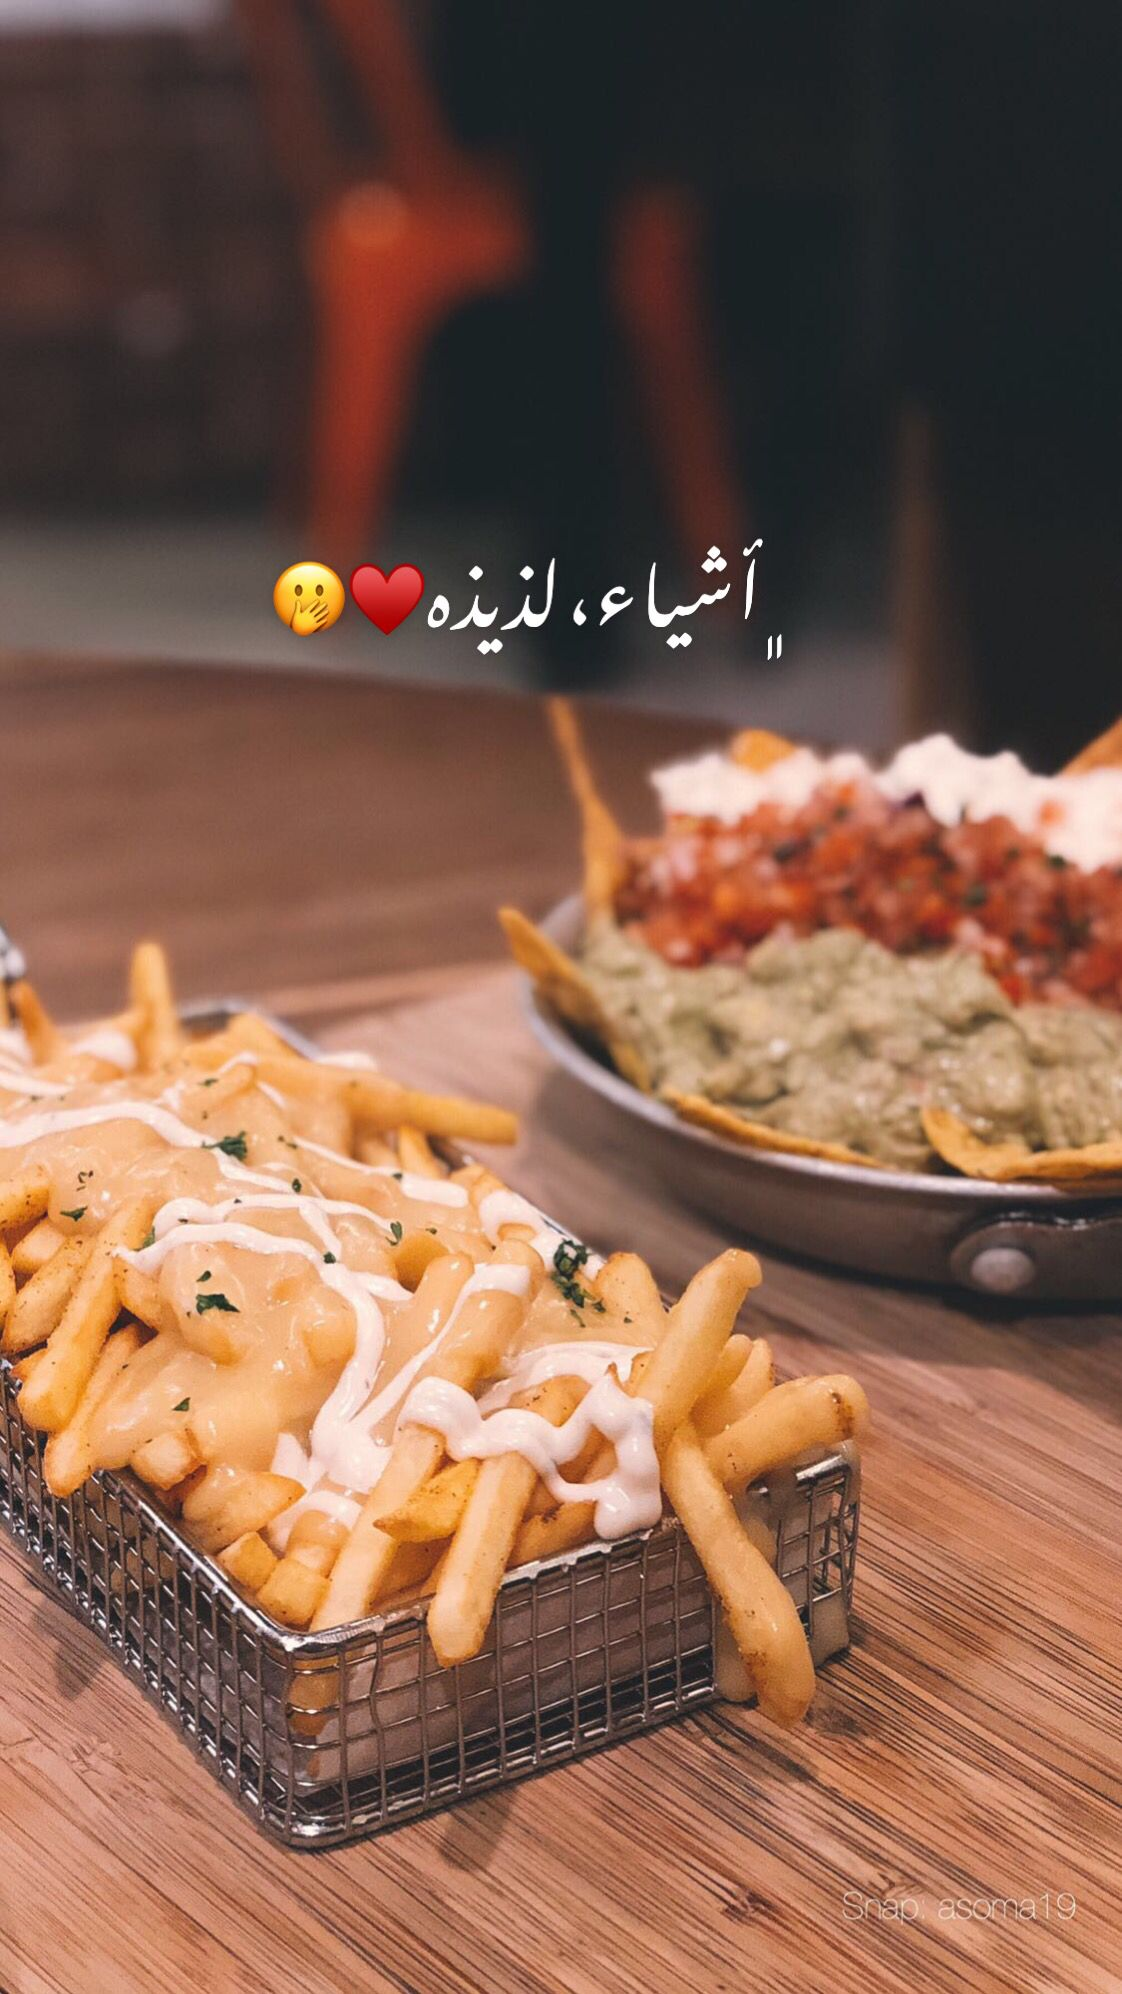 Pin By تيعيت On يوميات Snap Food Food And Drink Food Photo